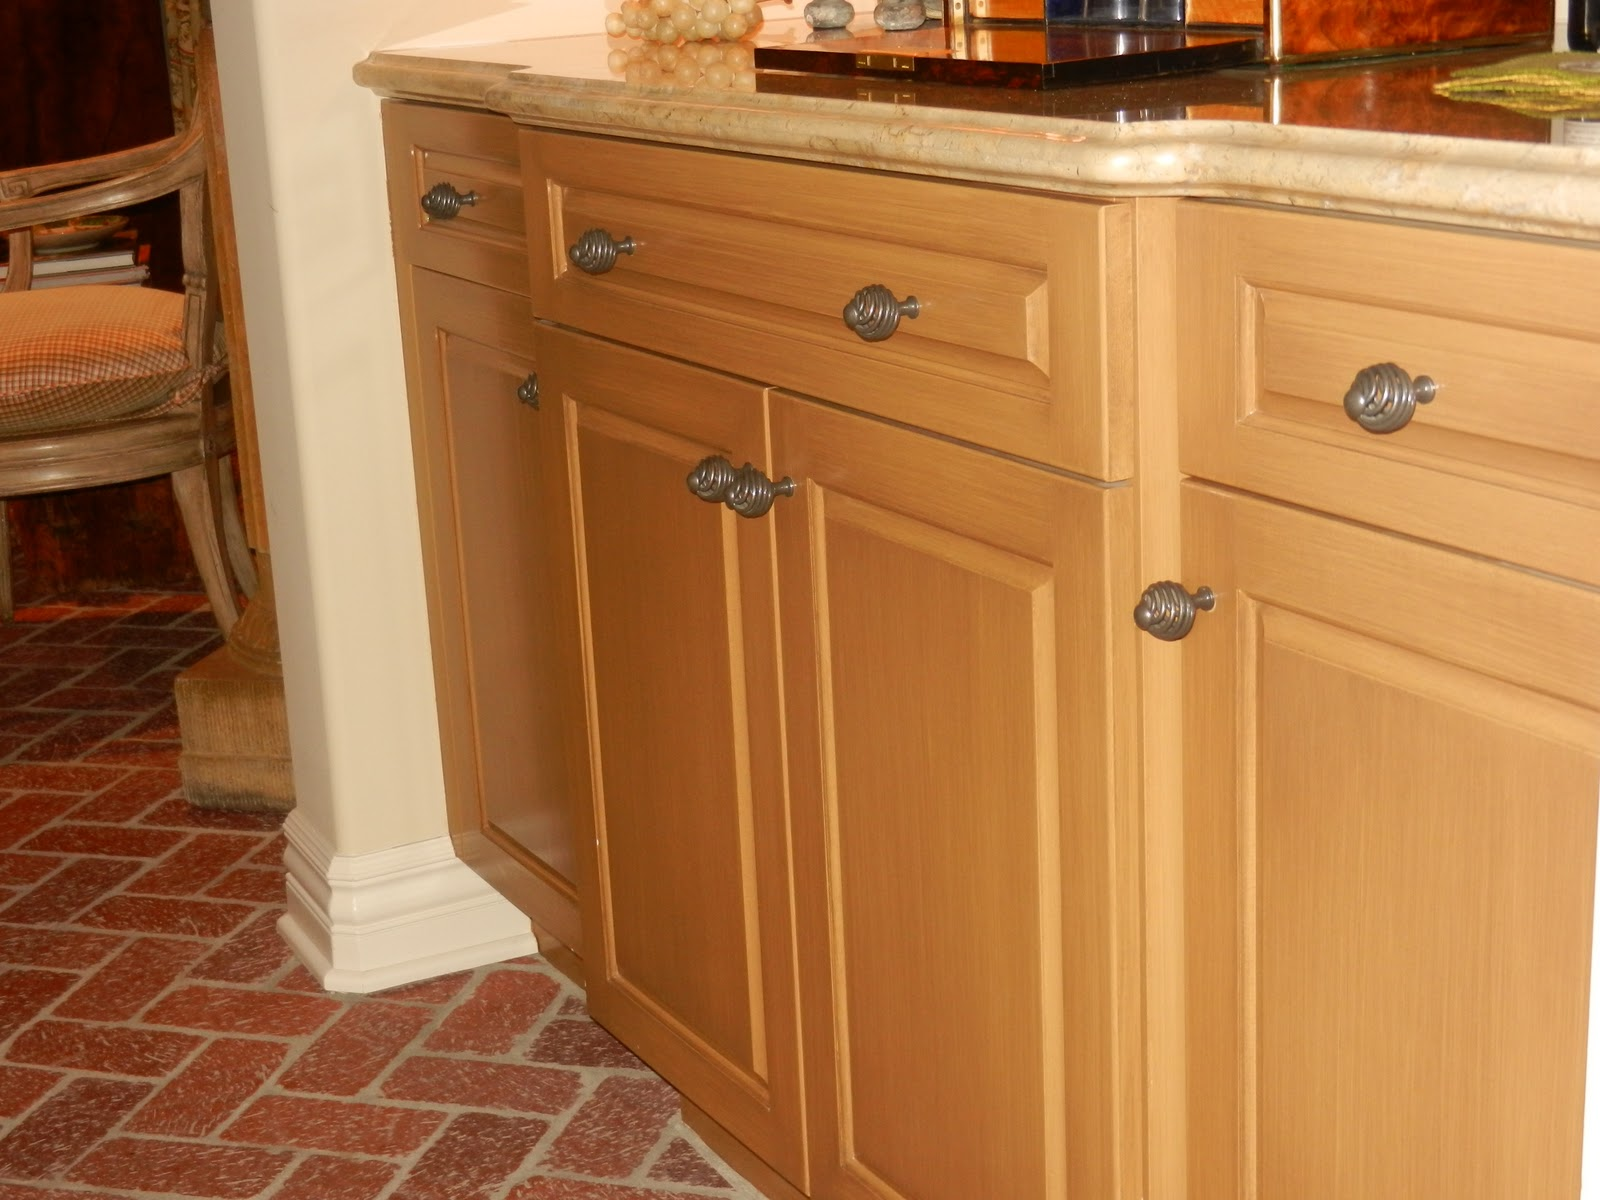 He painted and glazed the butler's pantry cabinetry in a gorgeous